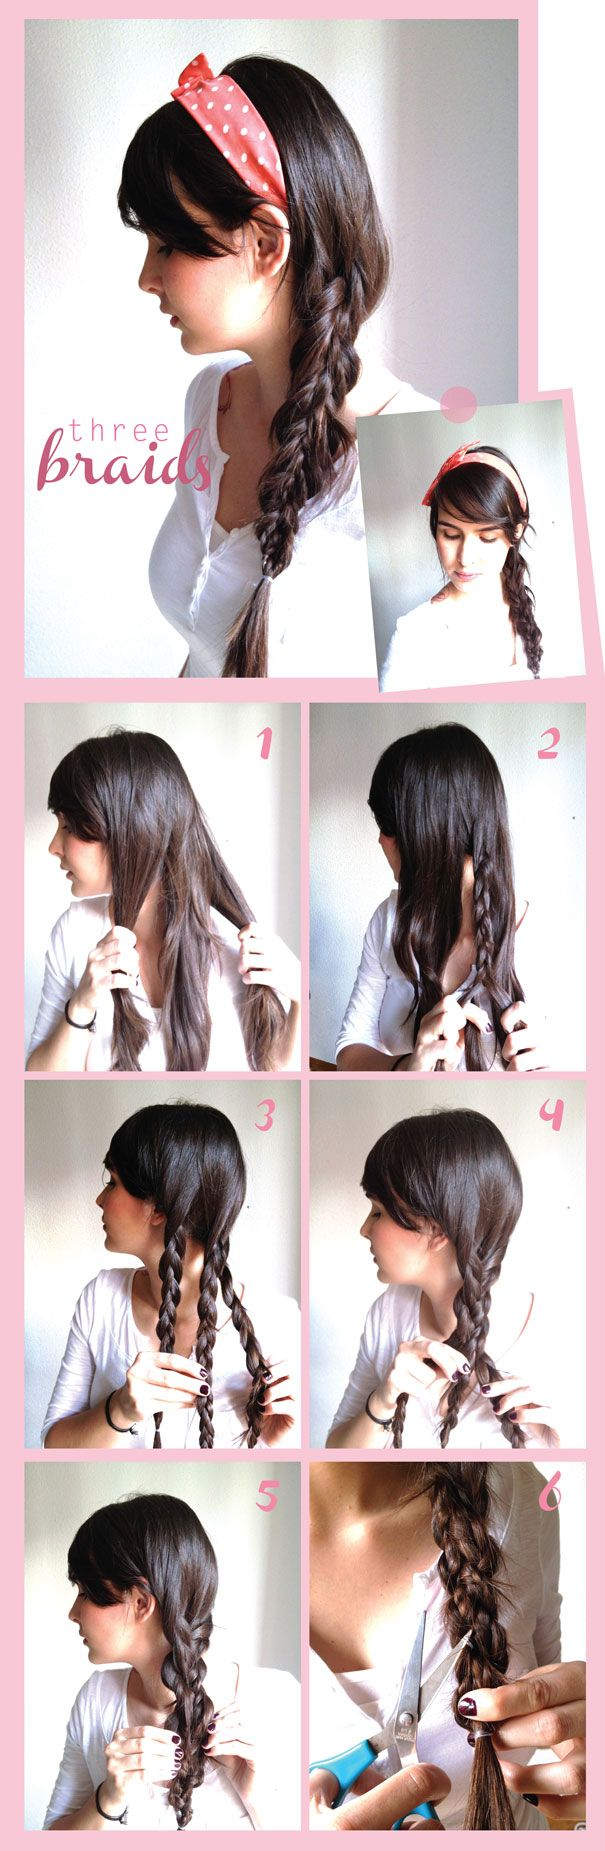 braid + braid + braid = cute